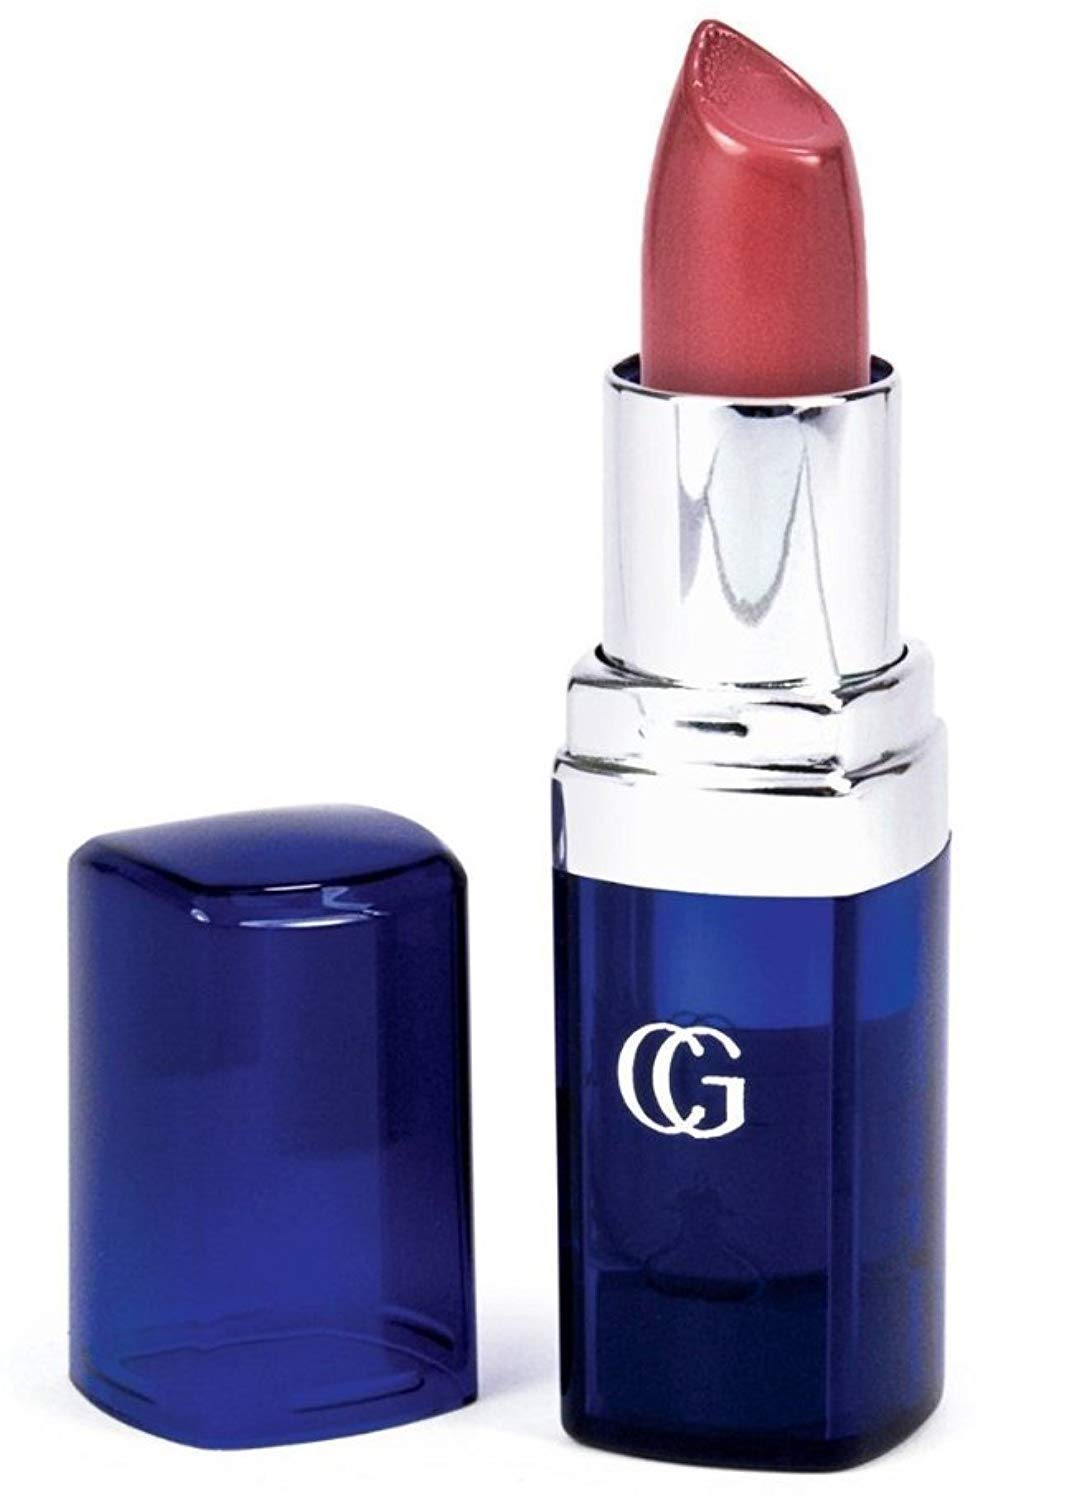 Covergirl Crded Continuous Color Lipstick 430 Bistro Burgundy, 4.5 Ounce